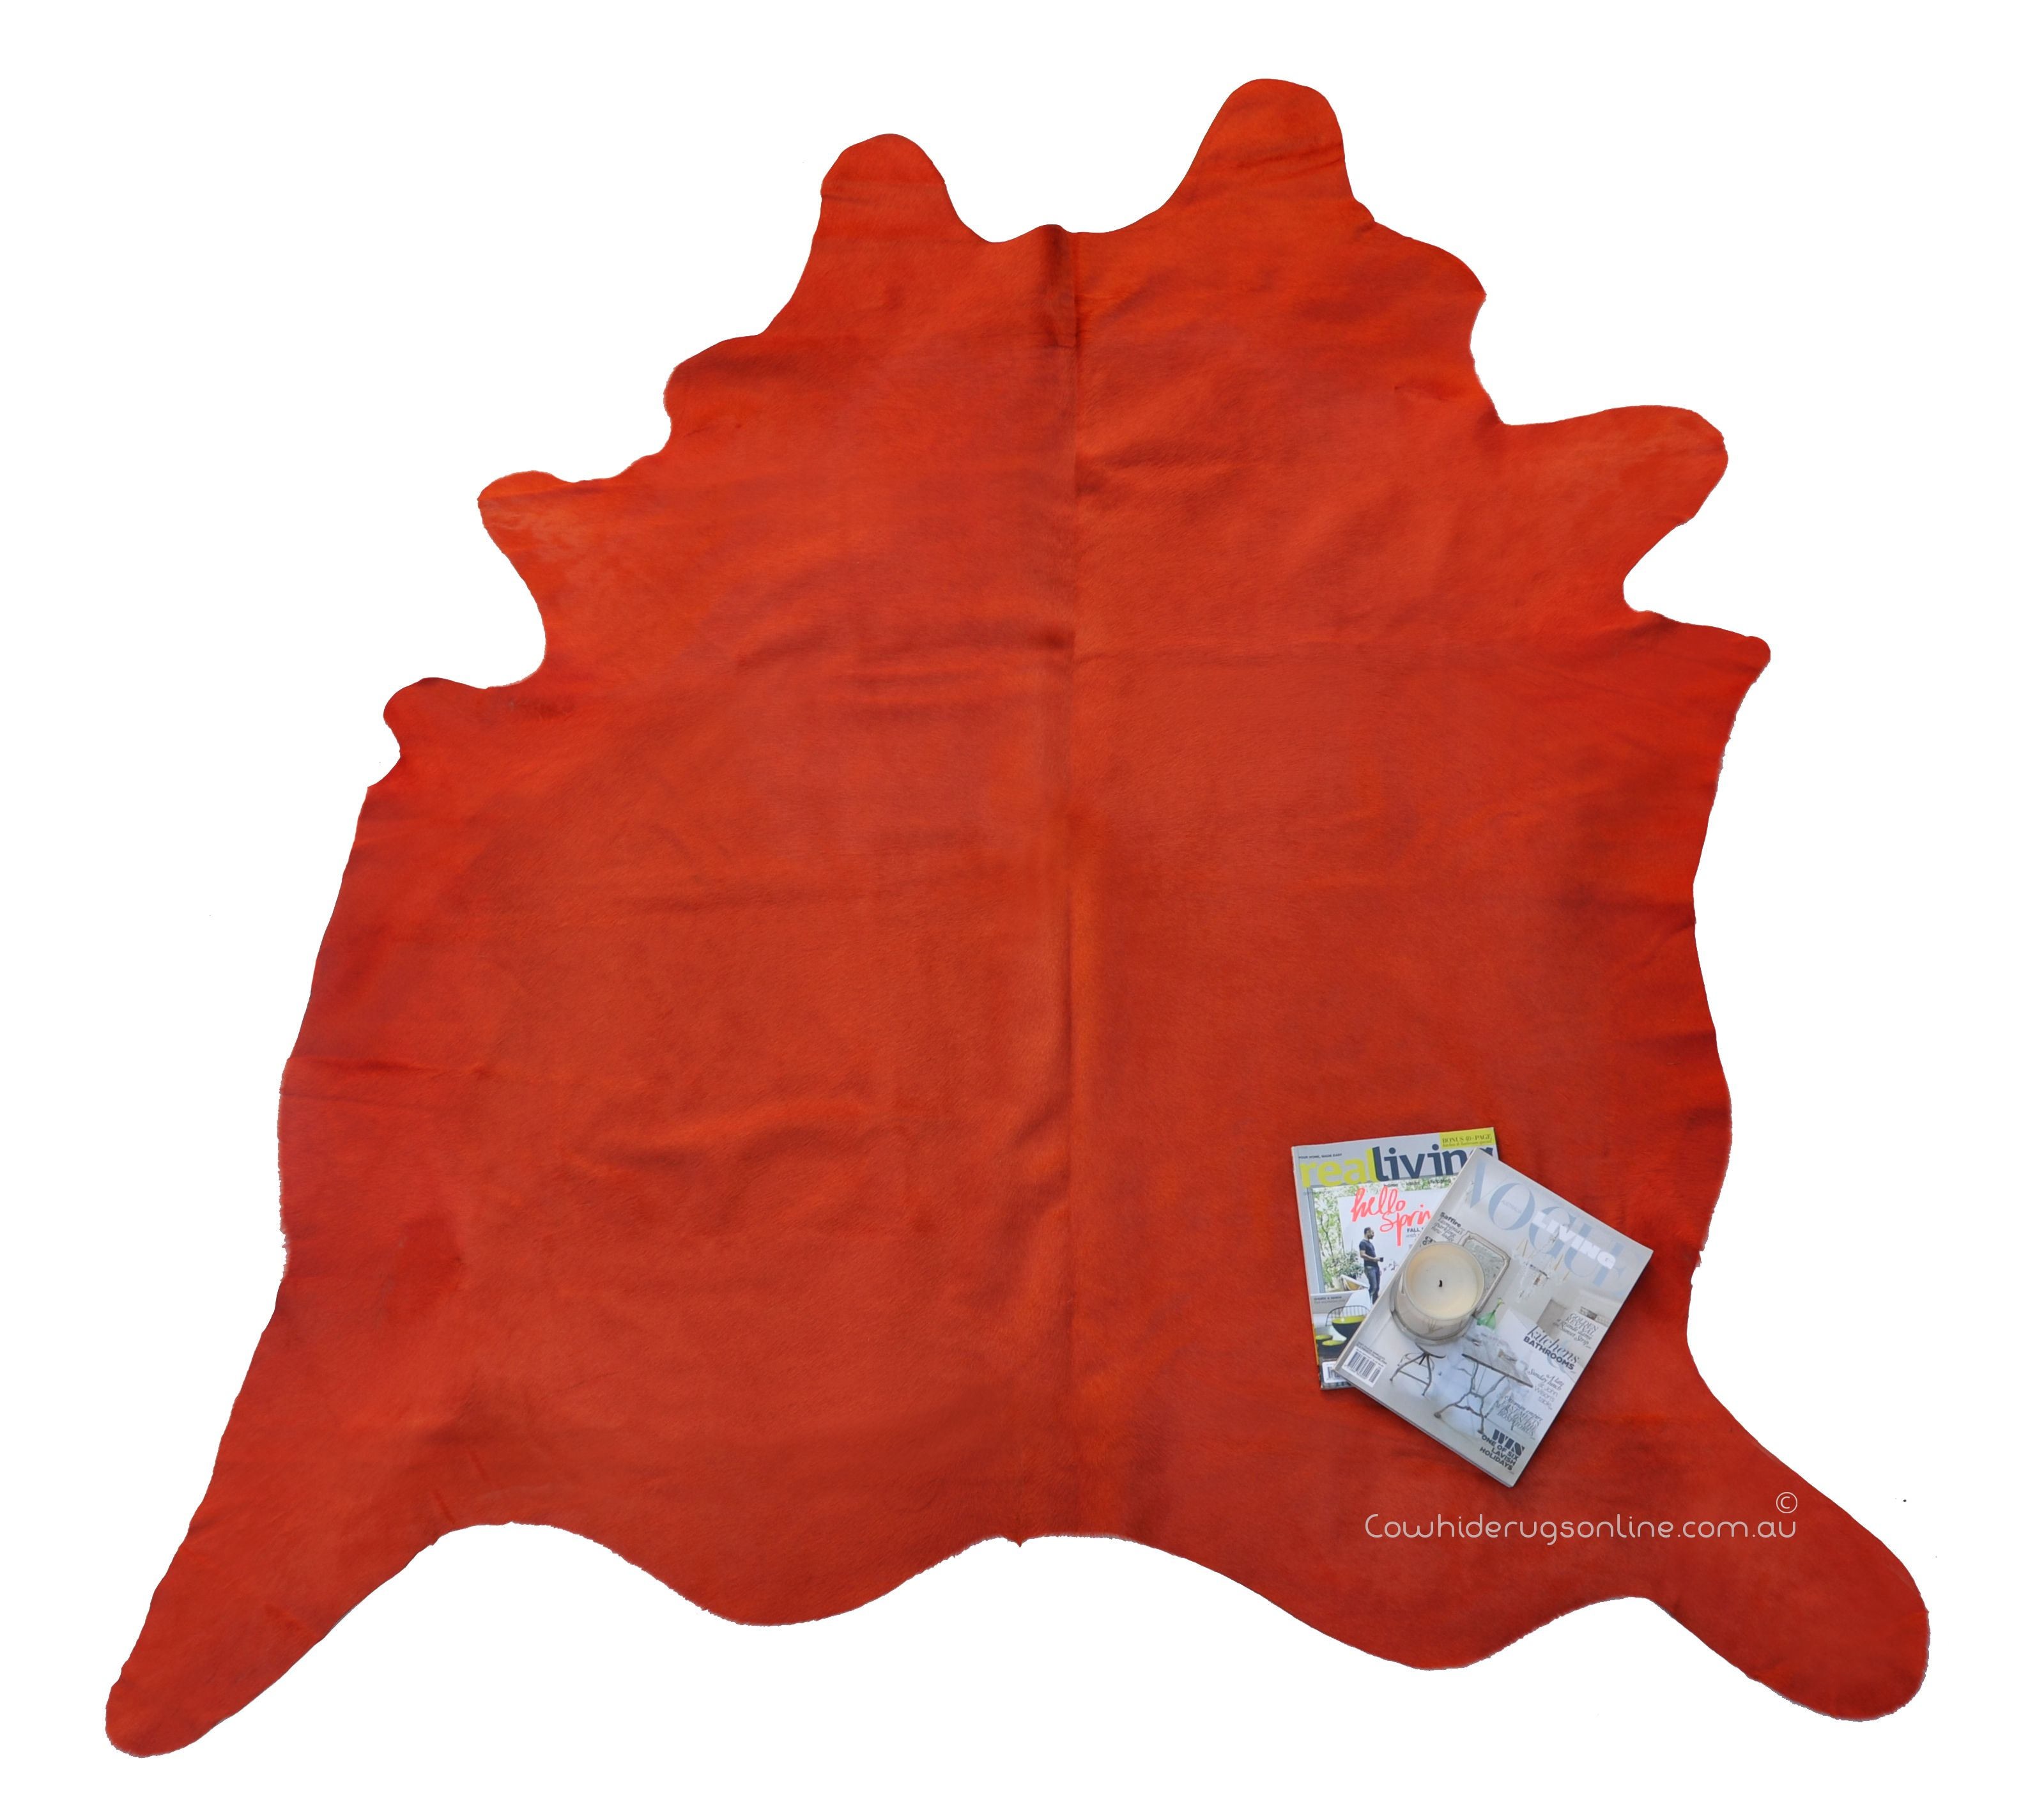 429 Australia Wide Fast Delivery Orange Cowhide Rug Coloured